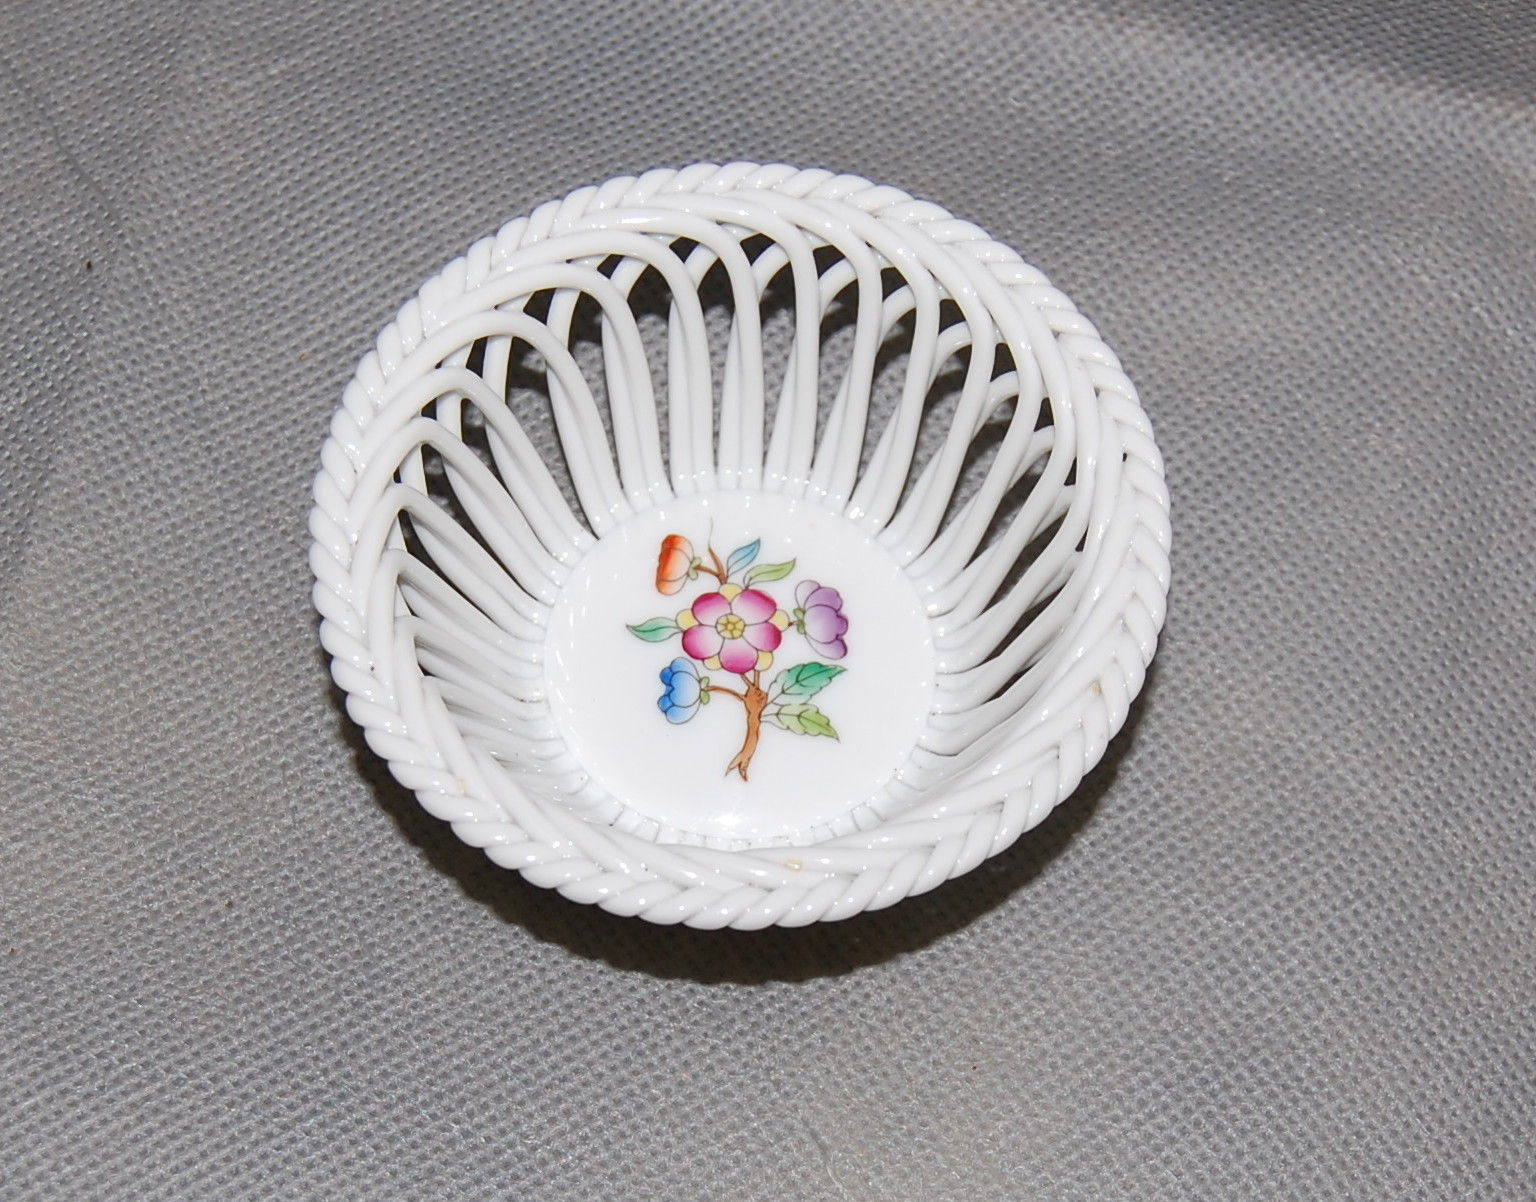 Herend Hungary Porcelain Giftware Pattern And 50 Similar Items